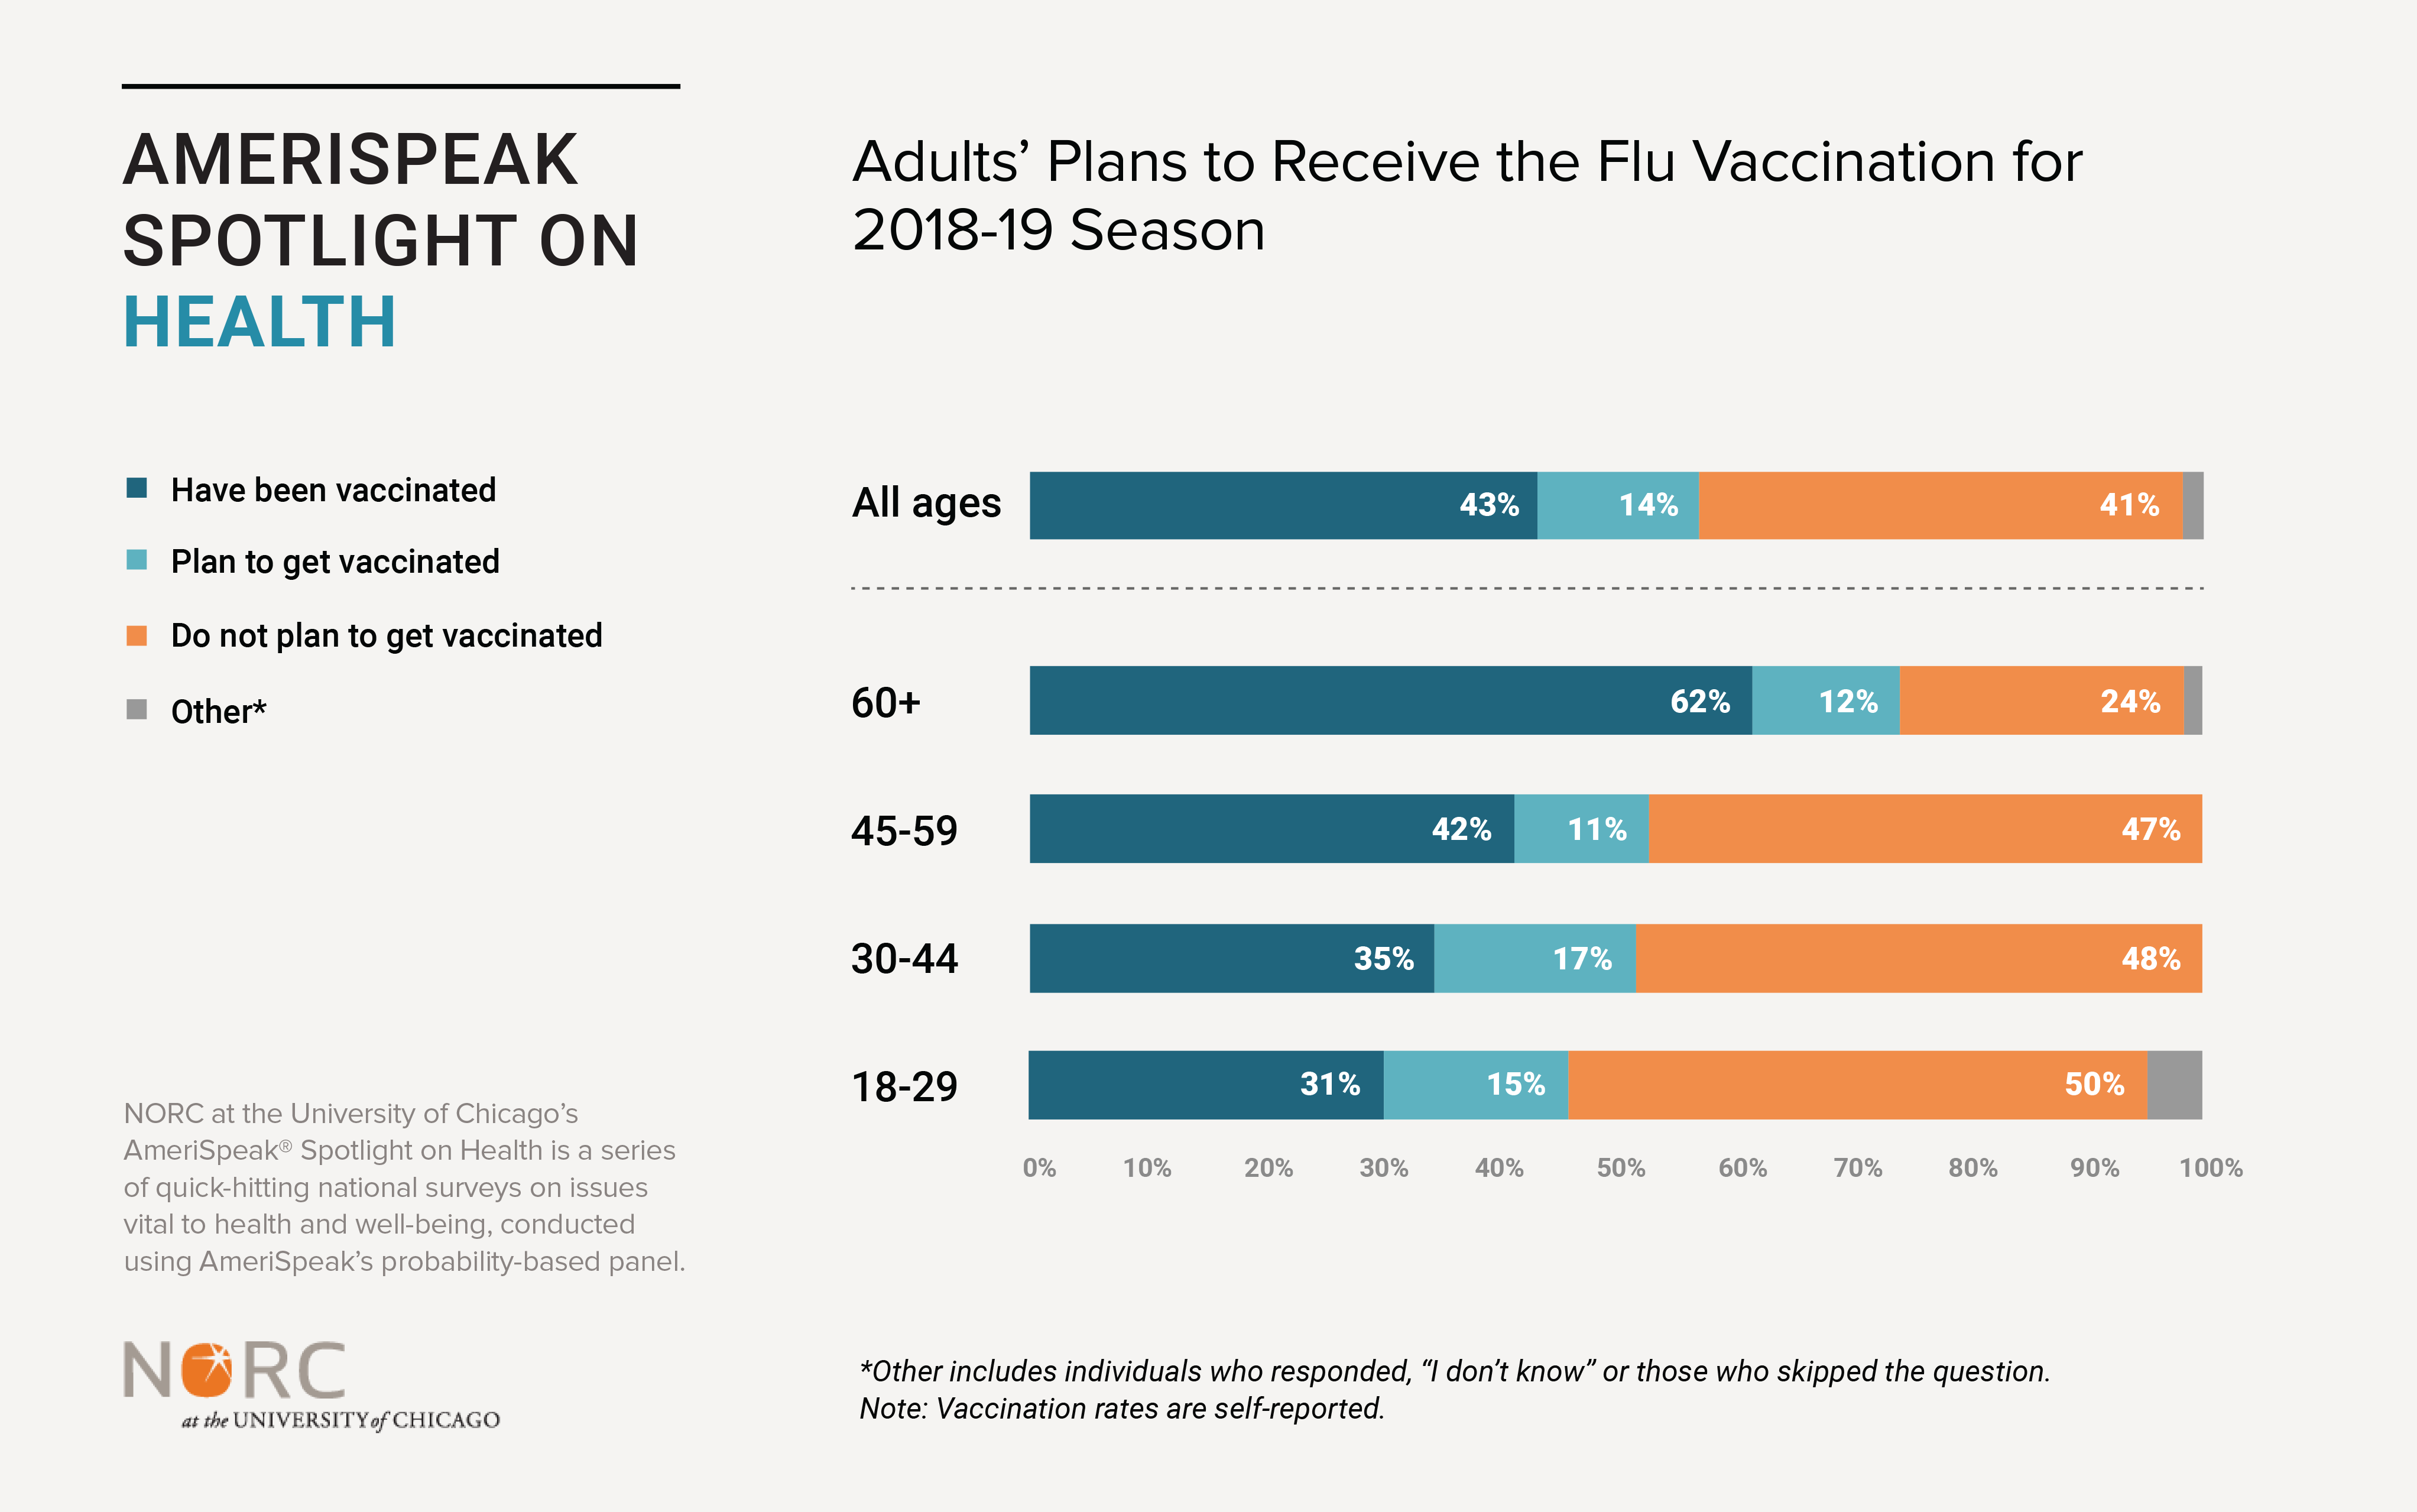 Adult's Plans to Receive the Flu Vaccination for 2018-19 Season